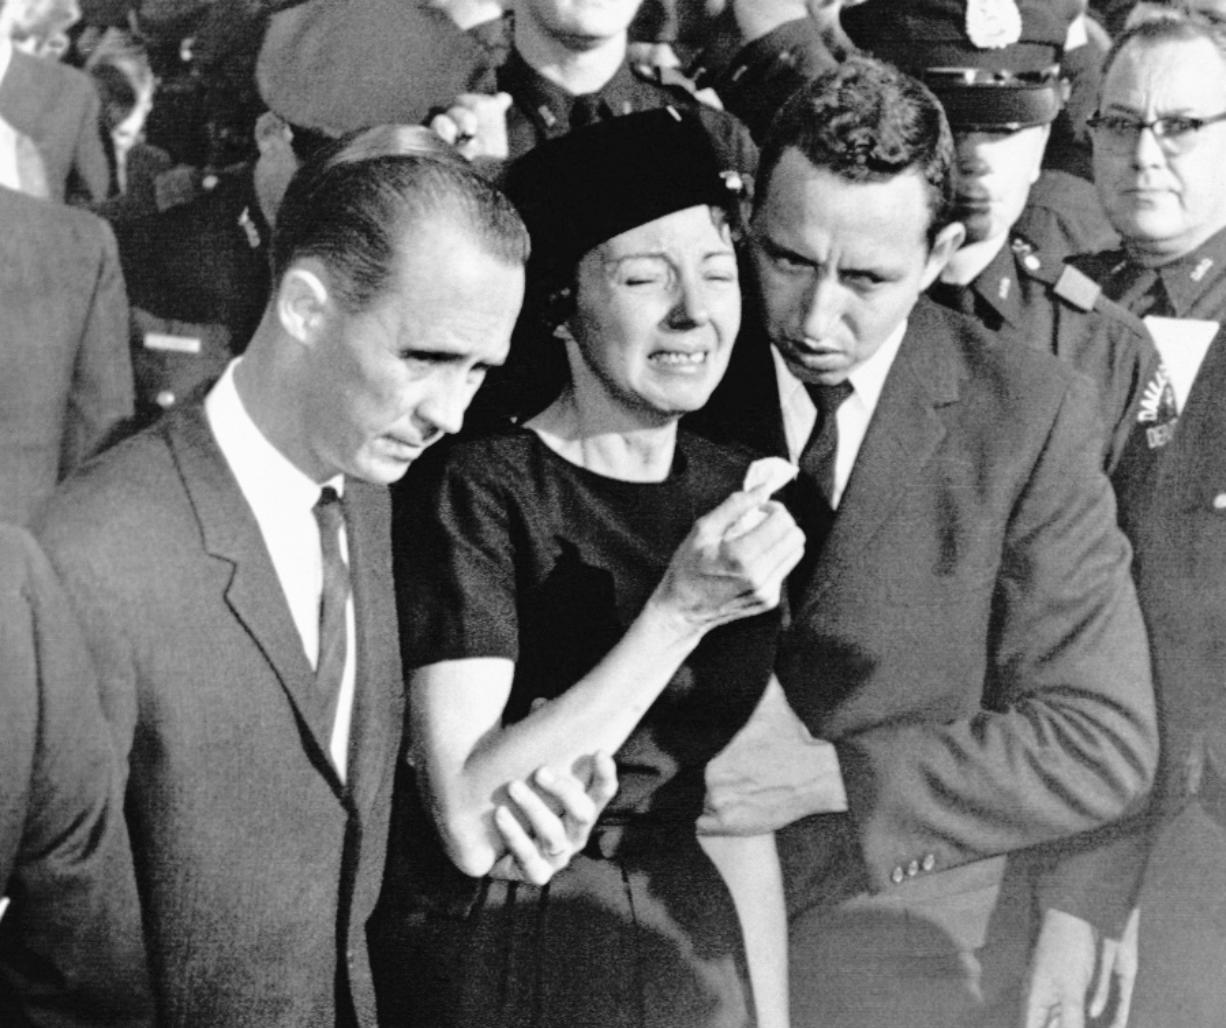 Marie Tippit, widow of police Officer J.D. Tippit, who was slain during the search for President John F. Kennedy's assassin, is led weeping from Beckley Hills Baptist Church in Dallas after funeral services for her husband on Nov. 25, 1963. Tippit was a 35-year-old mother of three when her husband was killed.